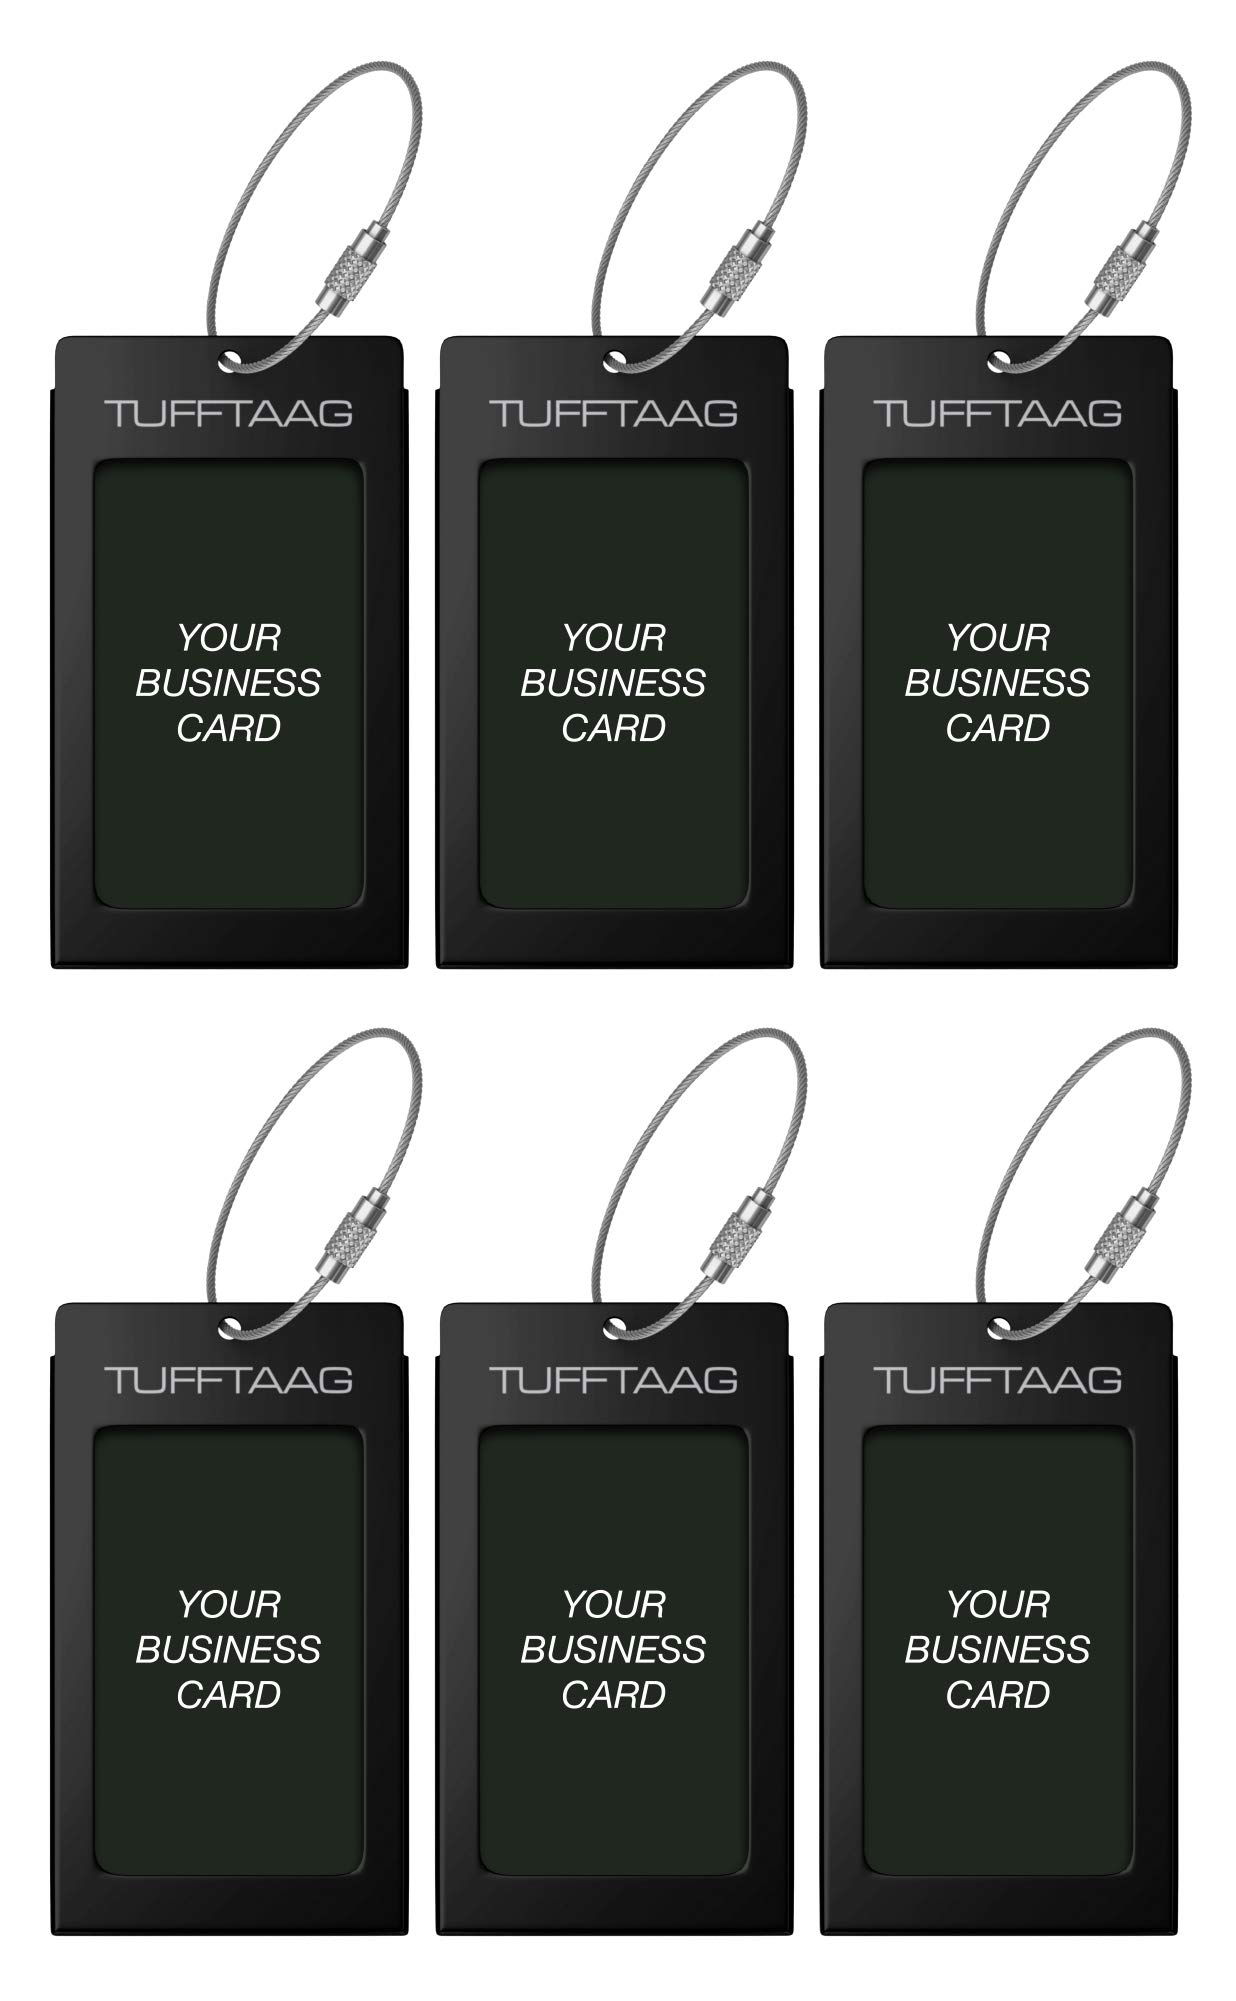 Luggage Tags TUFFTAAG for Business Cards, Metal Suitcase Labels, 6 Pack Bundle (6 Black)